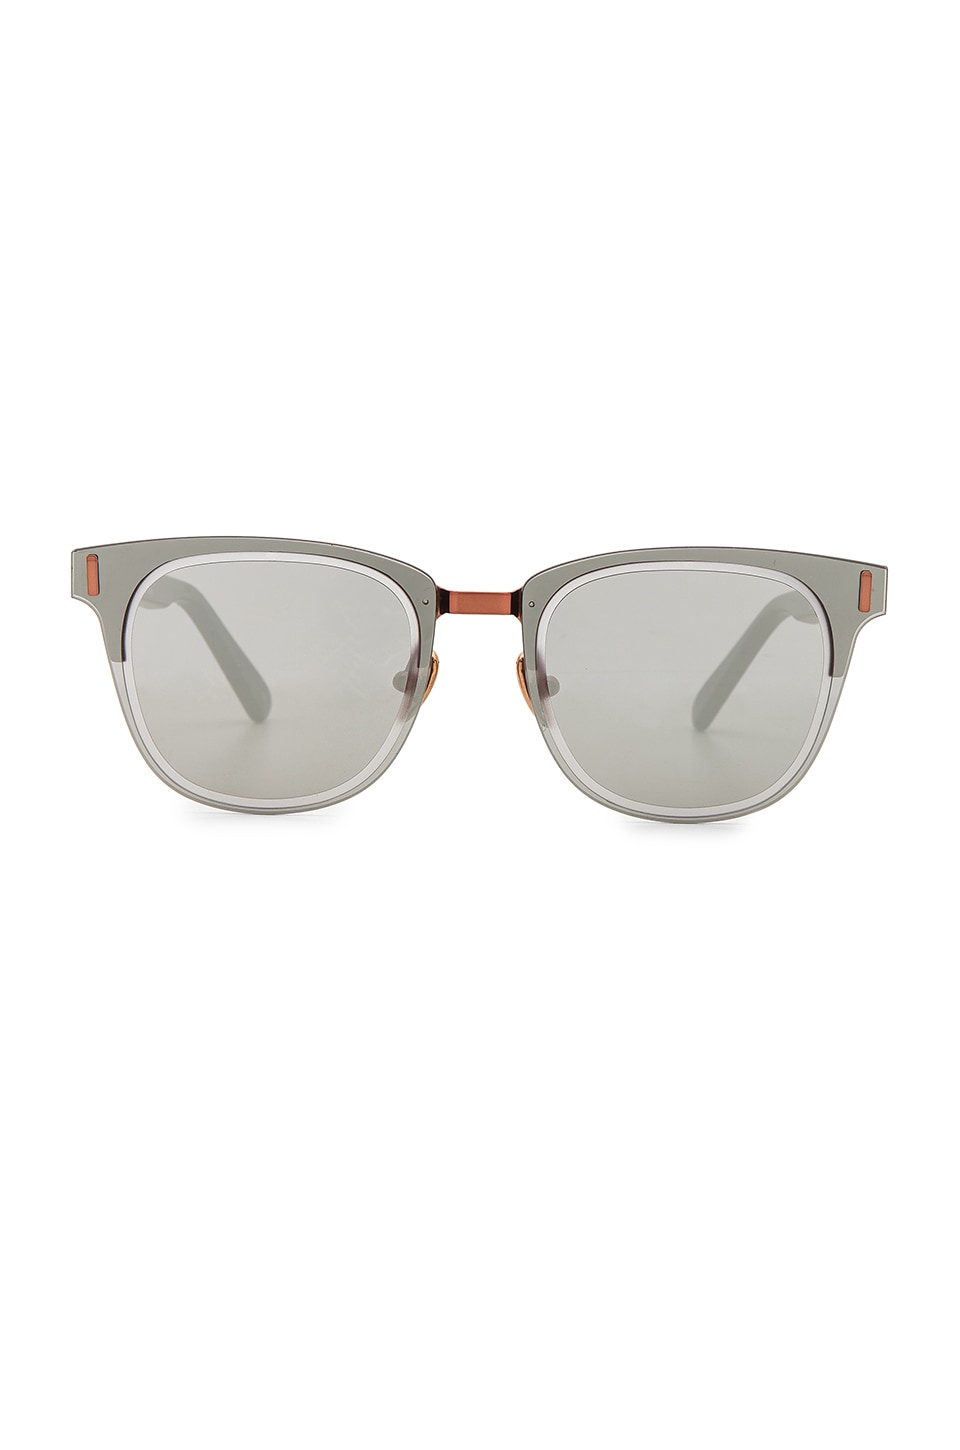 Mirrorcake Sunglasses by Westward Leaning